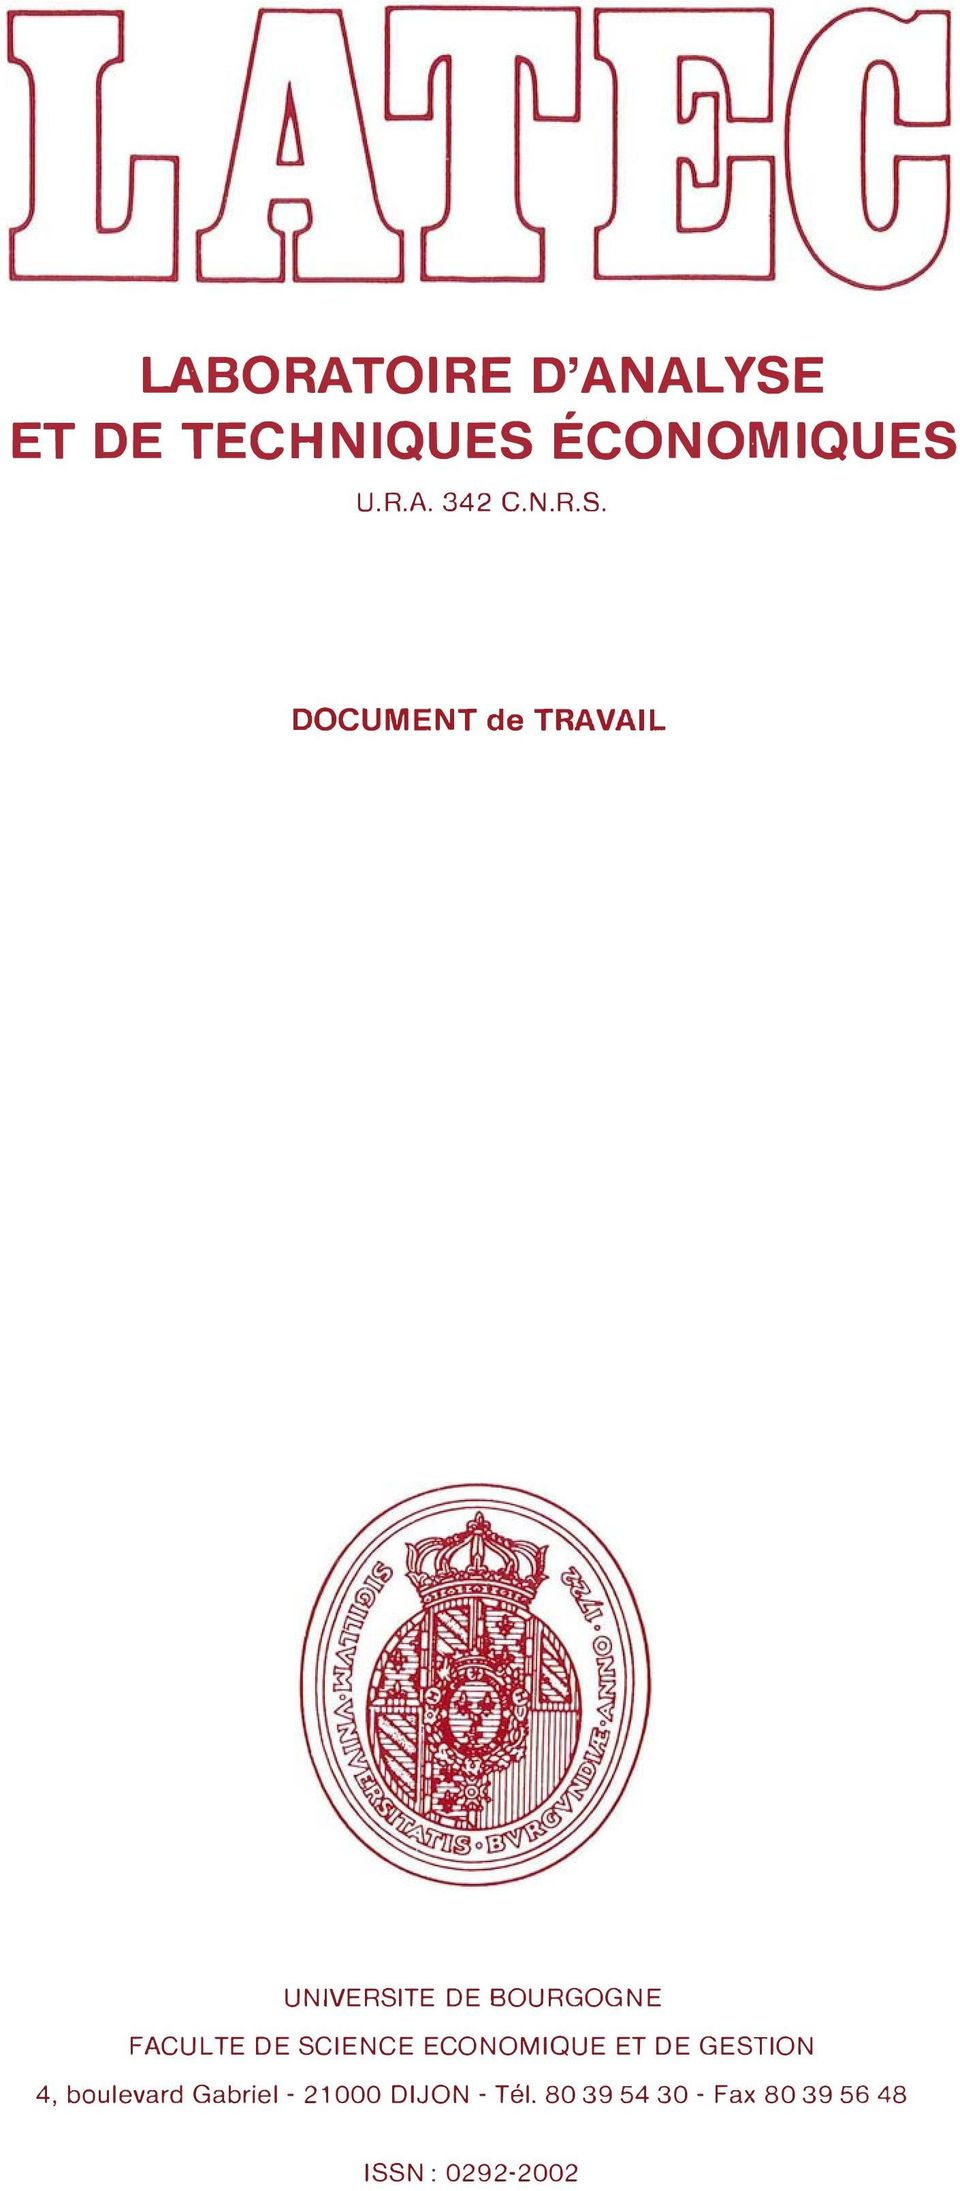 DOCUMENT de TRAVAIL UNIVERSITE DE BOURGOGNE FACULTE DE